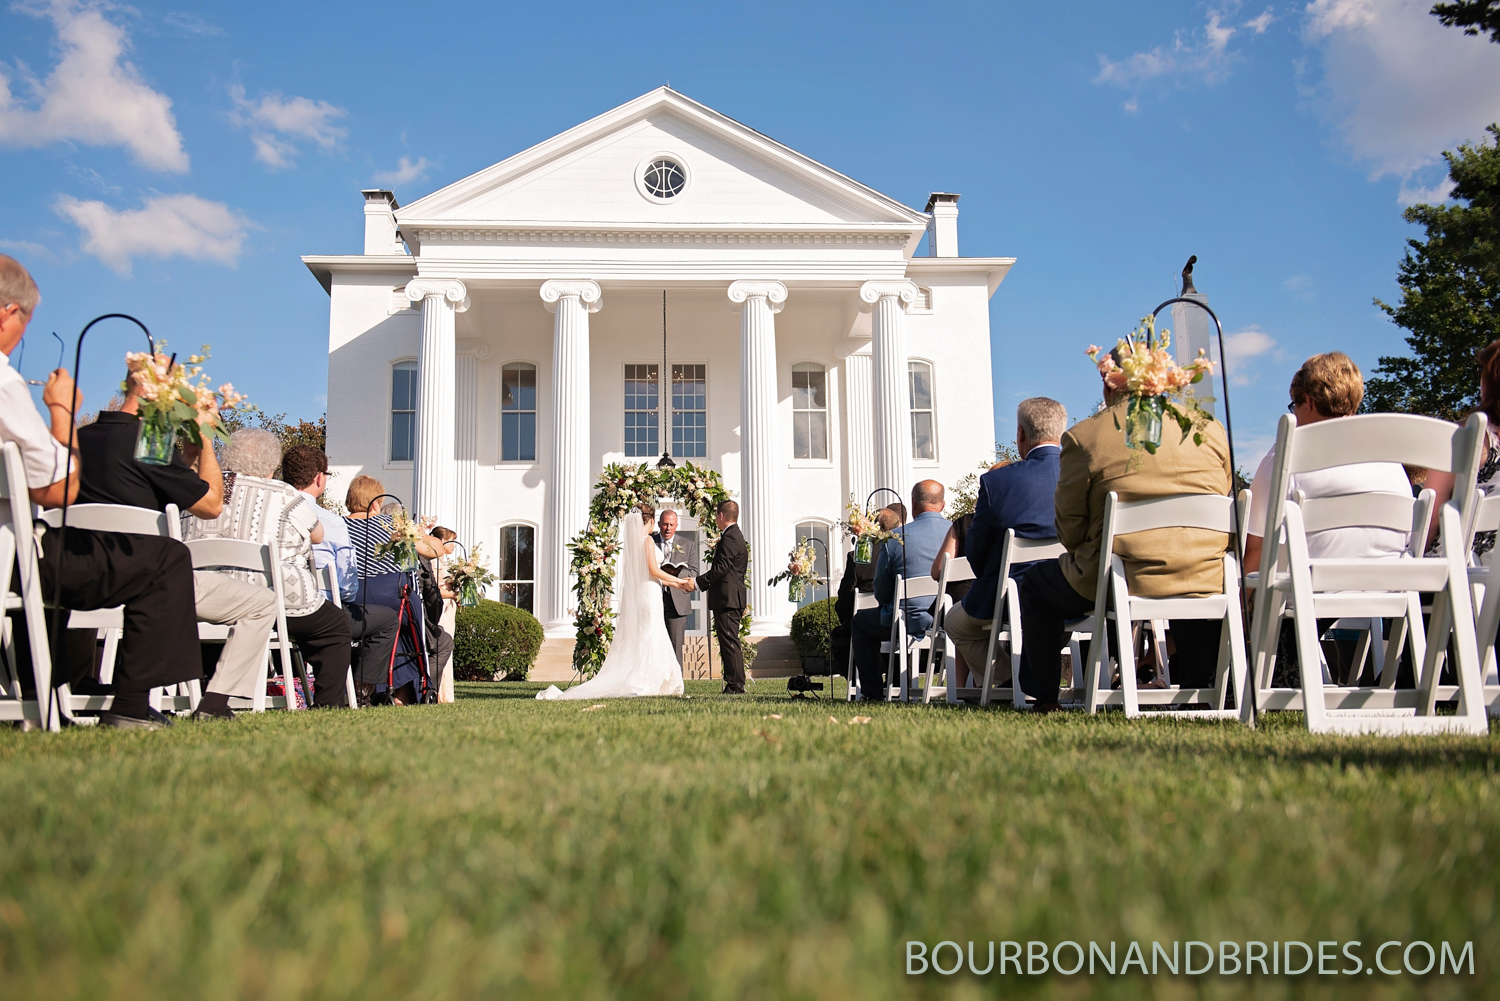 Marriott-Griffin-Gate-Ceremony-wedding-6.jpg